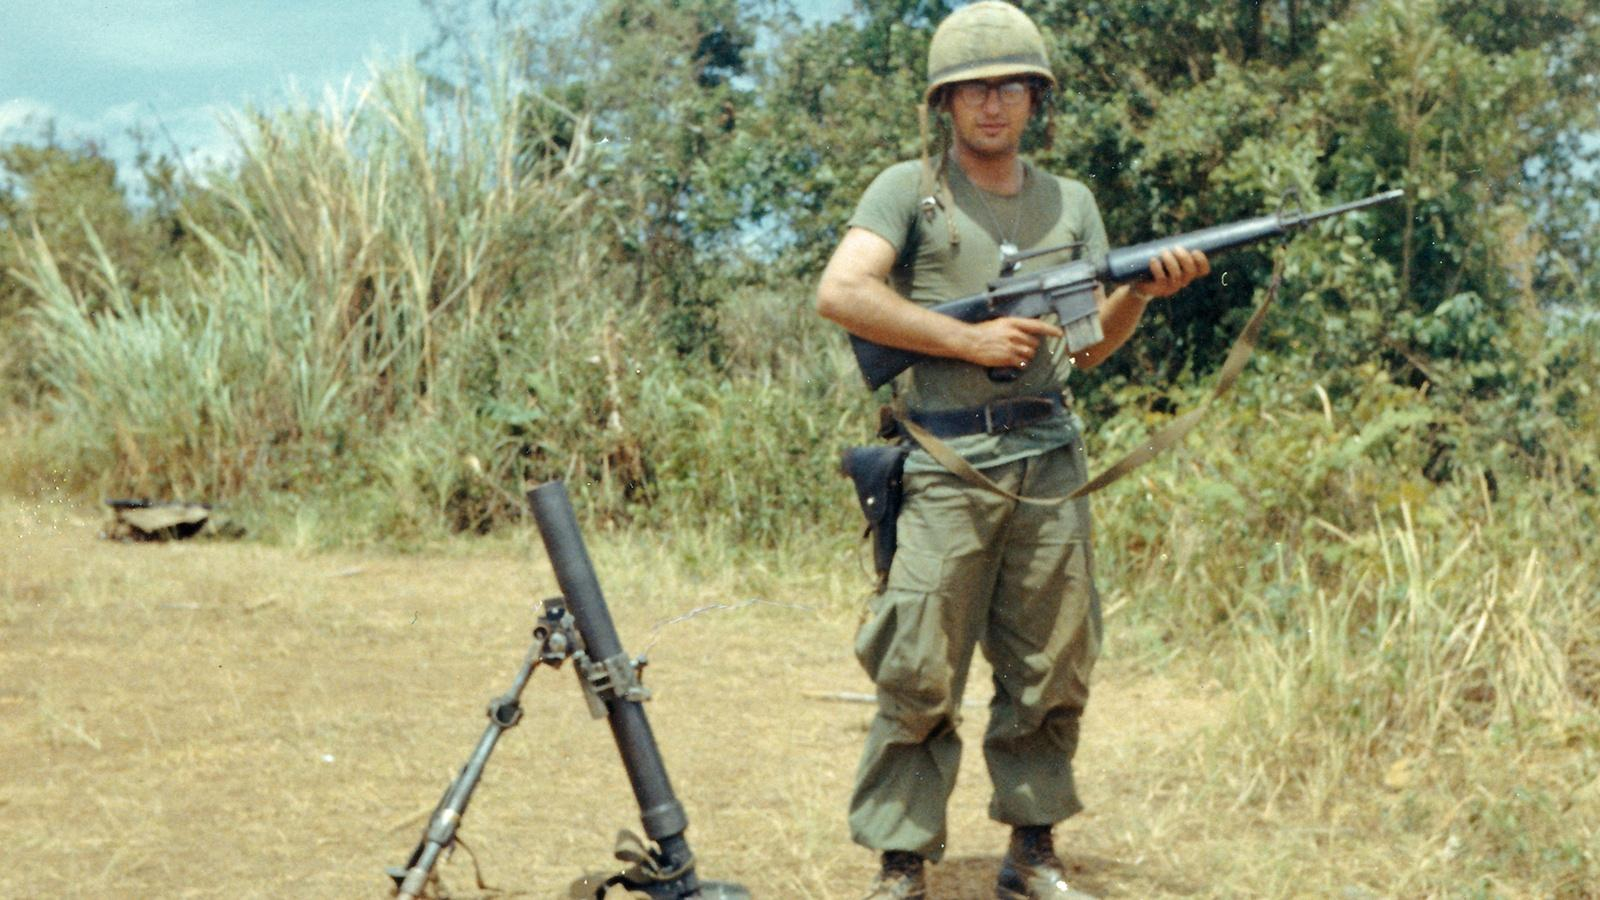 Sgt. Dominic Bilotta, at the young age of 20 years old, was in charge of about a dozen men in Vietnam.  His section handled 60mm mortars, rocket launchers and machine guns.